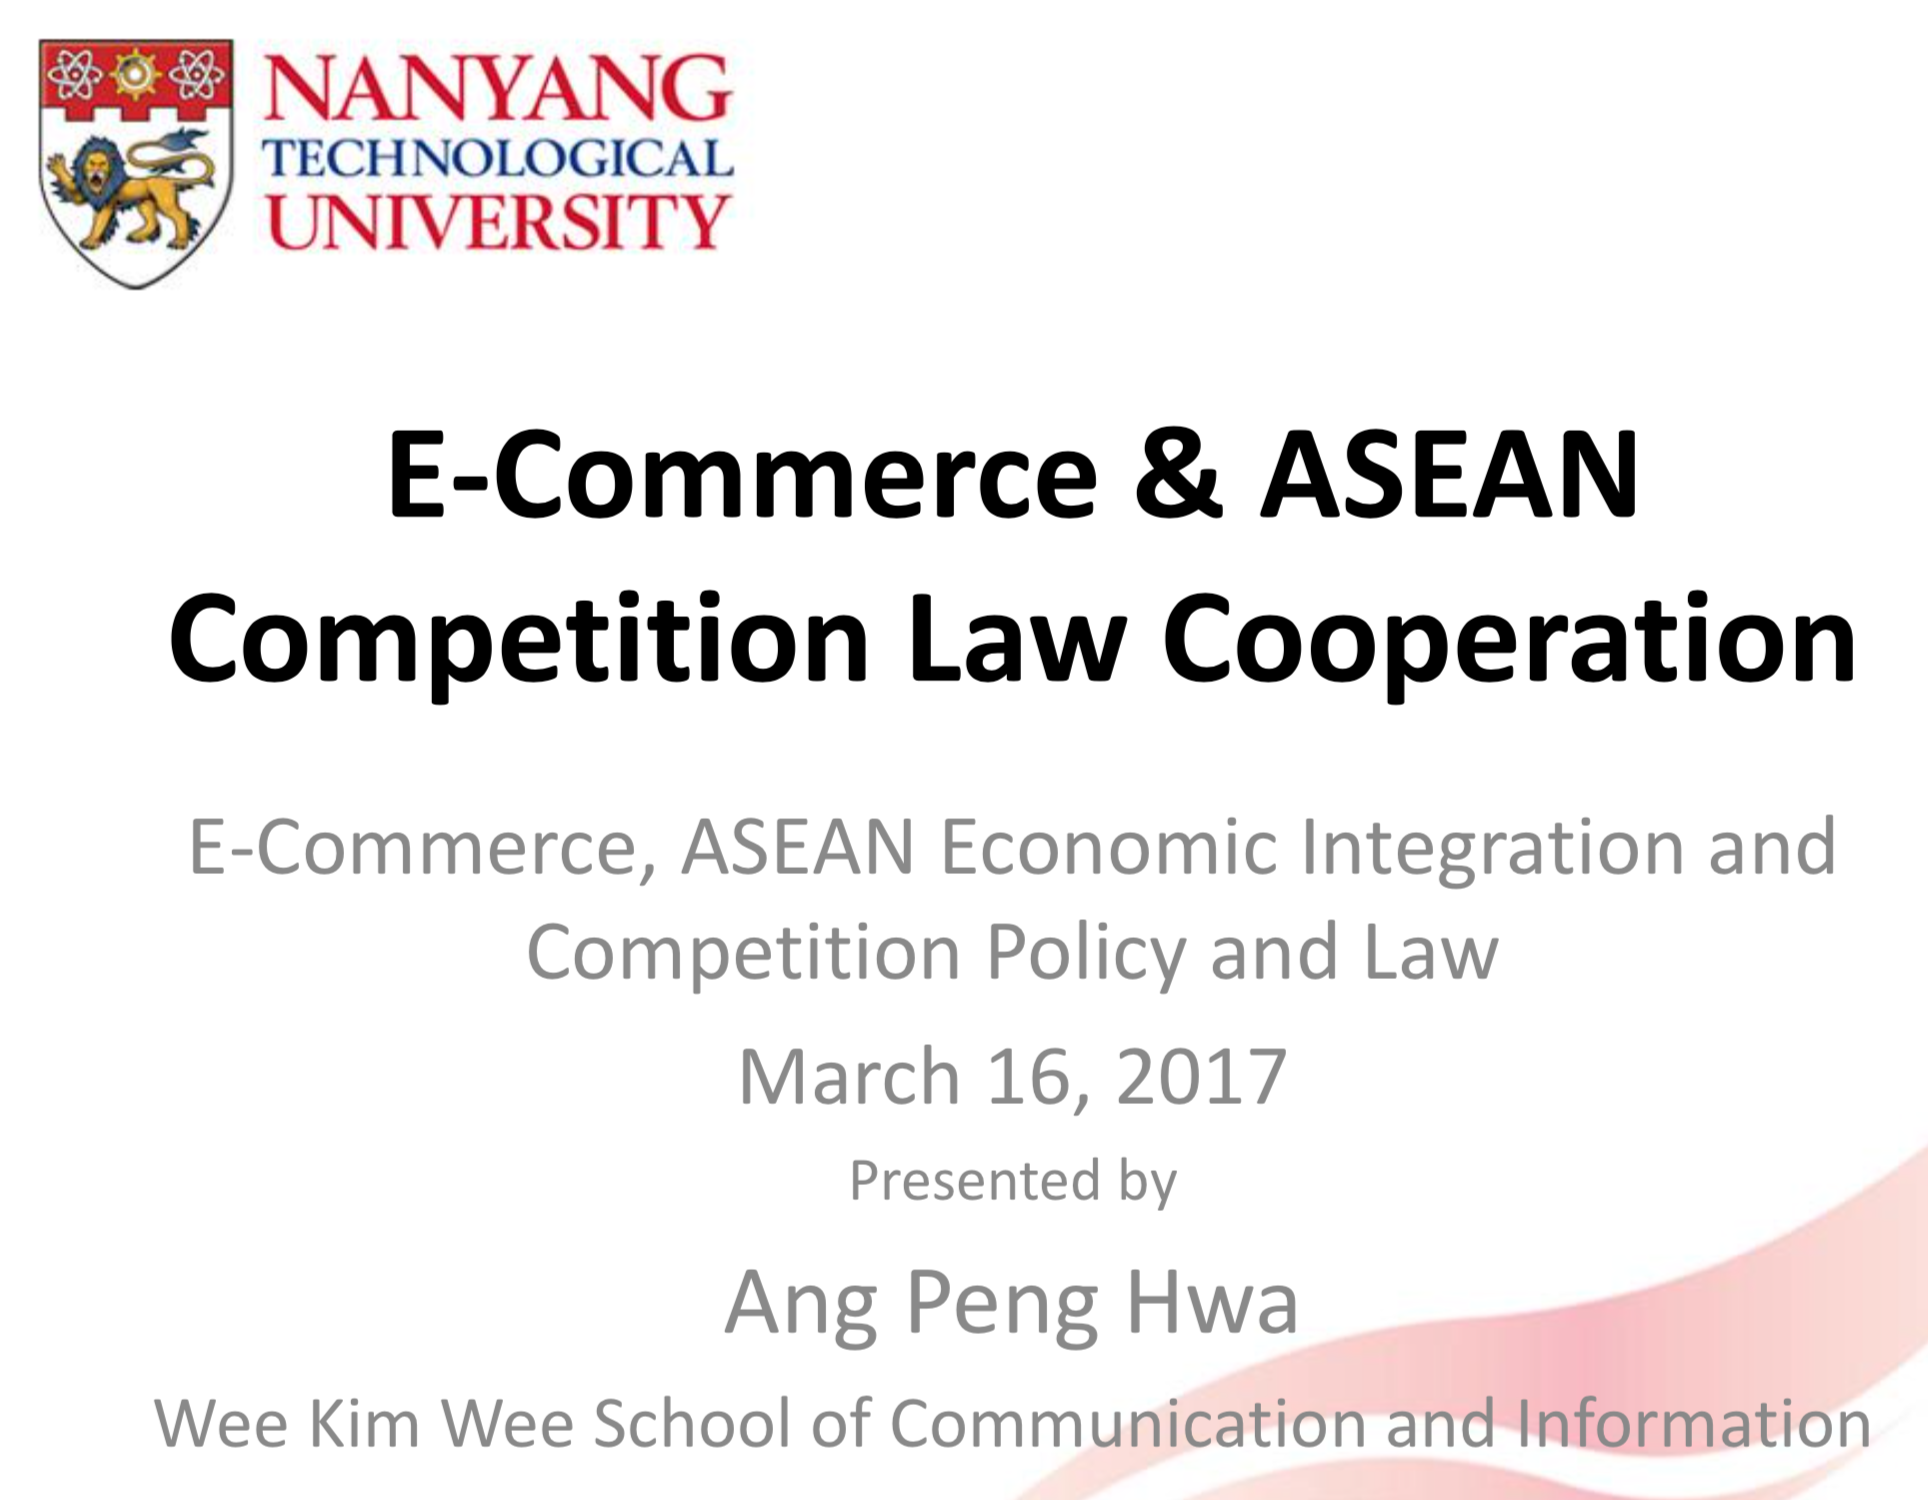 E-Commerce & ASEAN Competition Law Cooperation